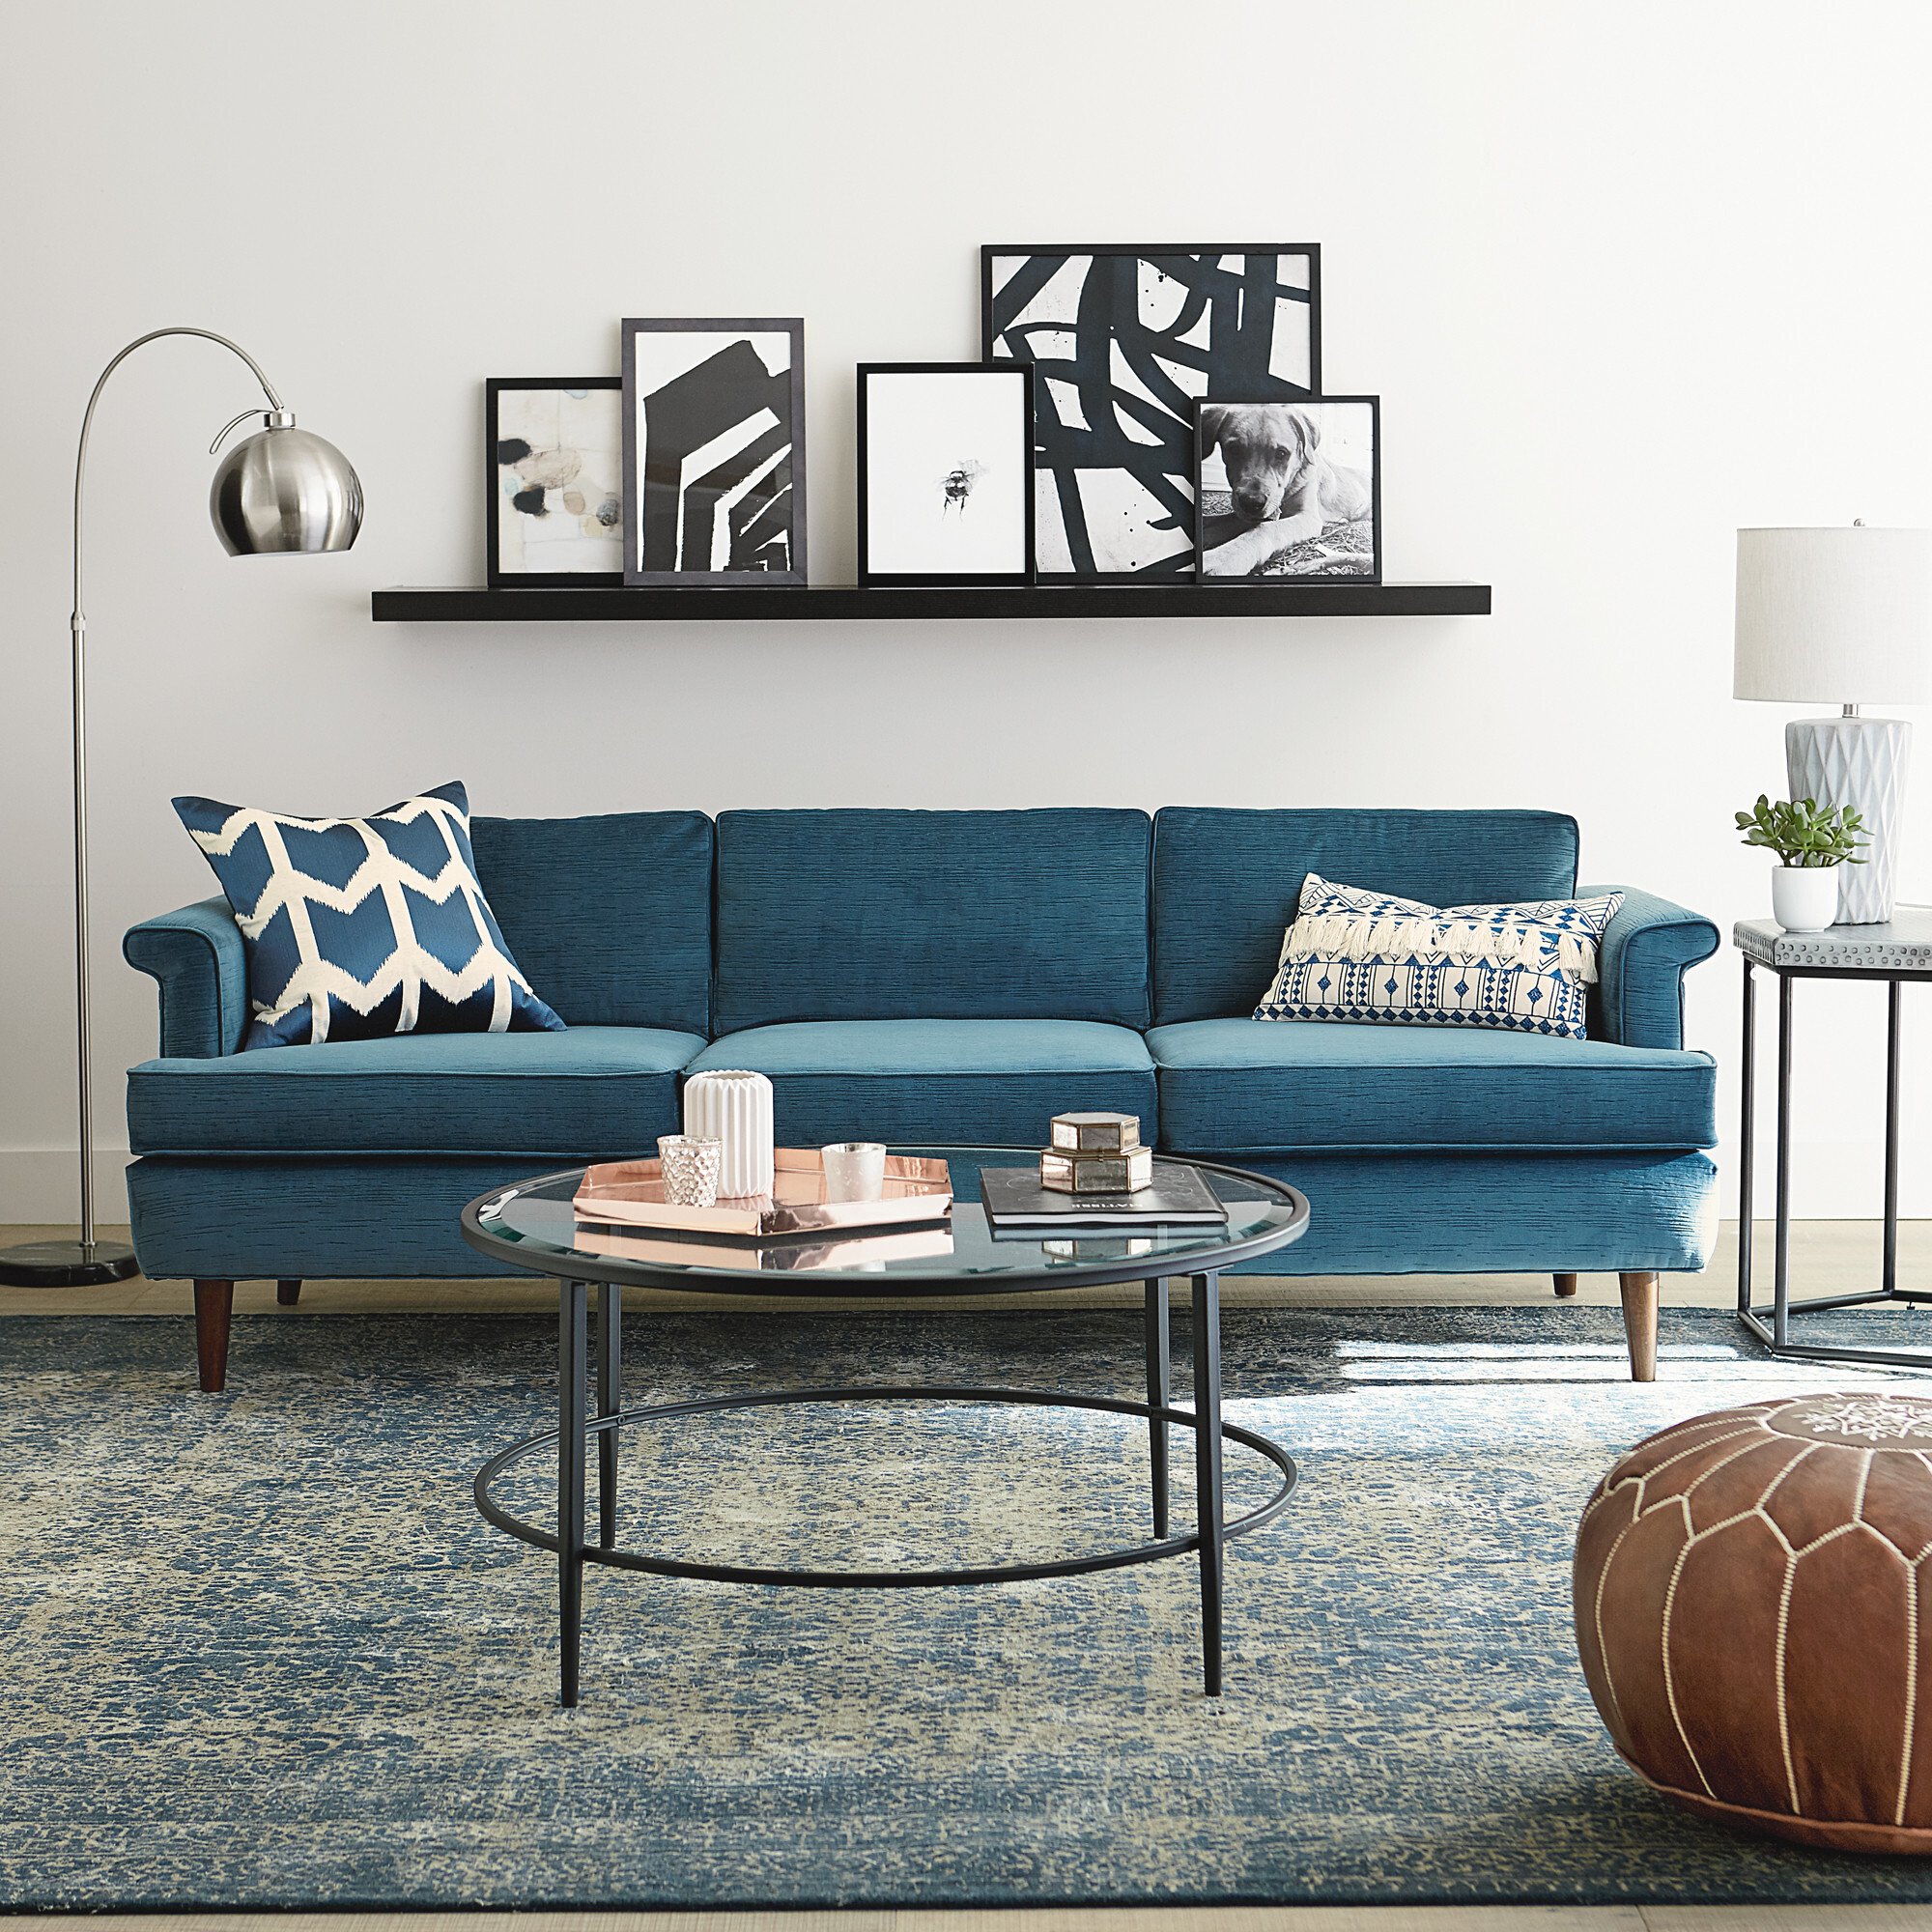 Top 25: Buyers' Upholstery Picks